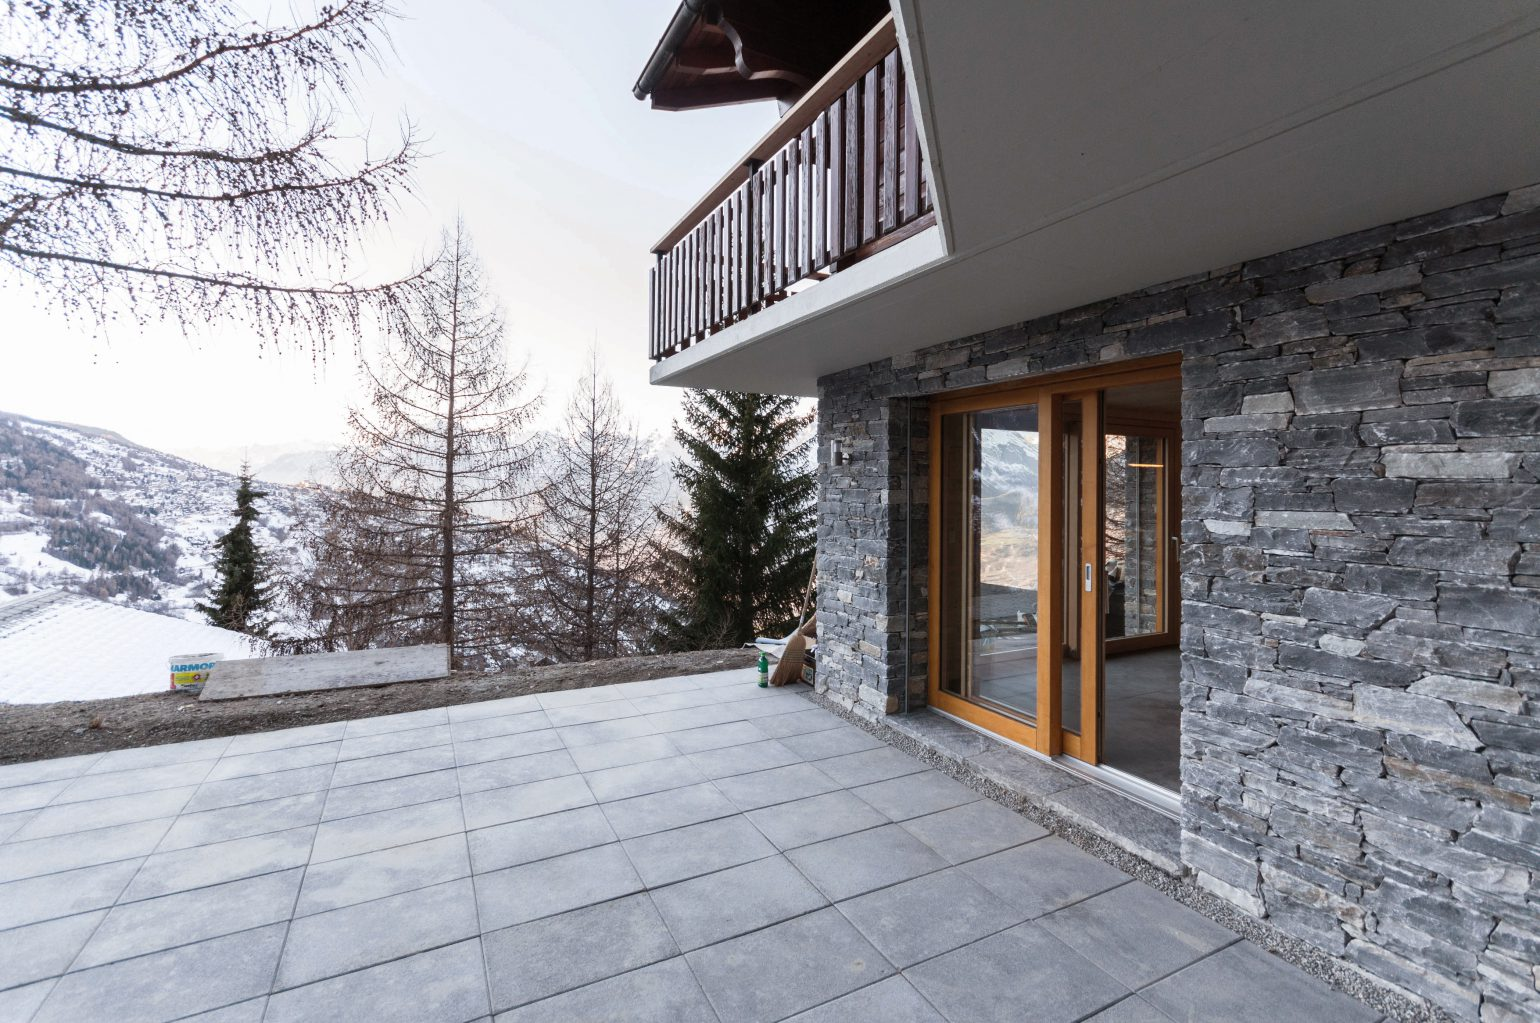 transformation-rénovation-chalet-coulon-veysonnaz-françois-meyer-architecture-sion-09